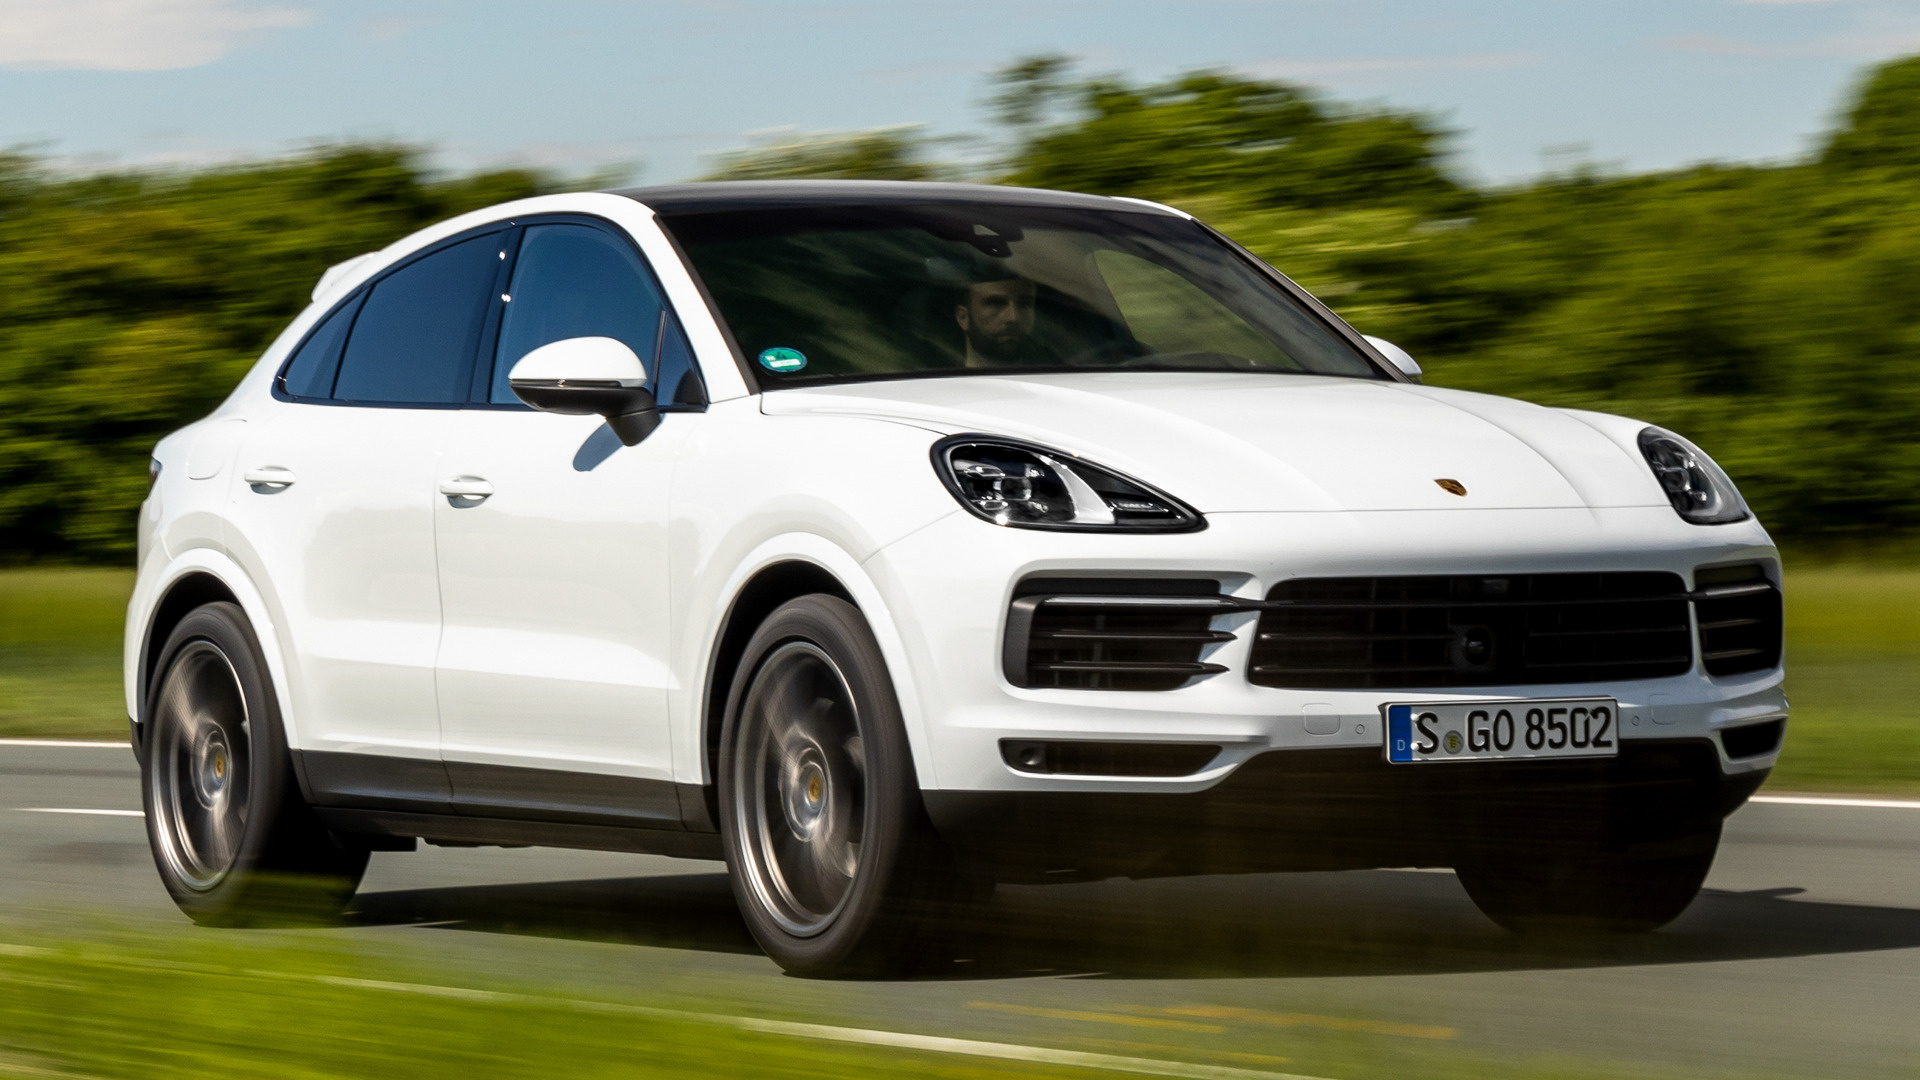 2019 Porsche Cayenne Coupe   Wallpapers and HD Images Car Pixel 1920x1080